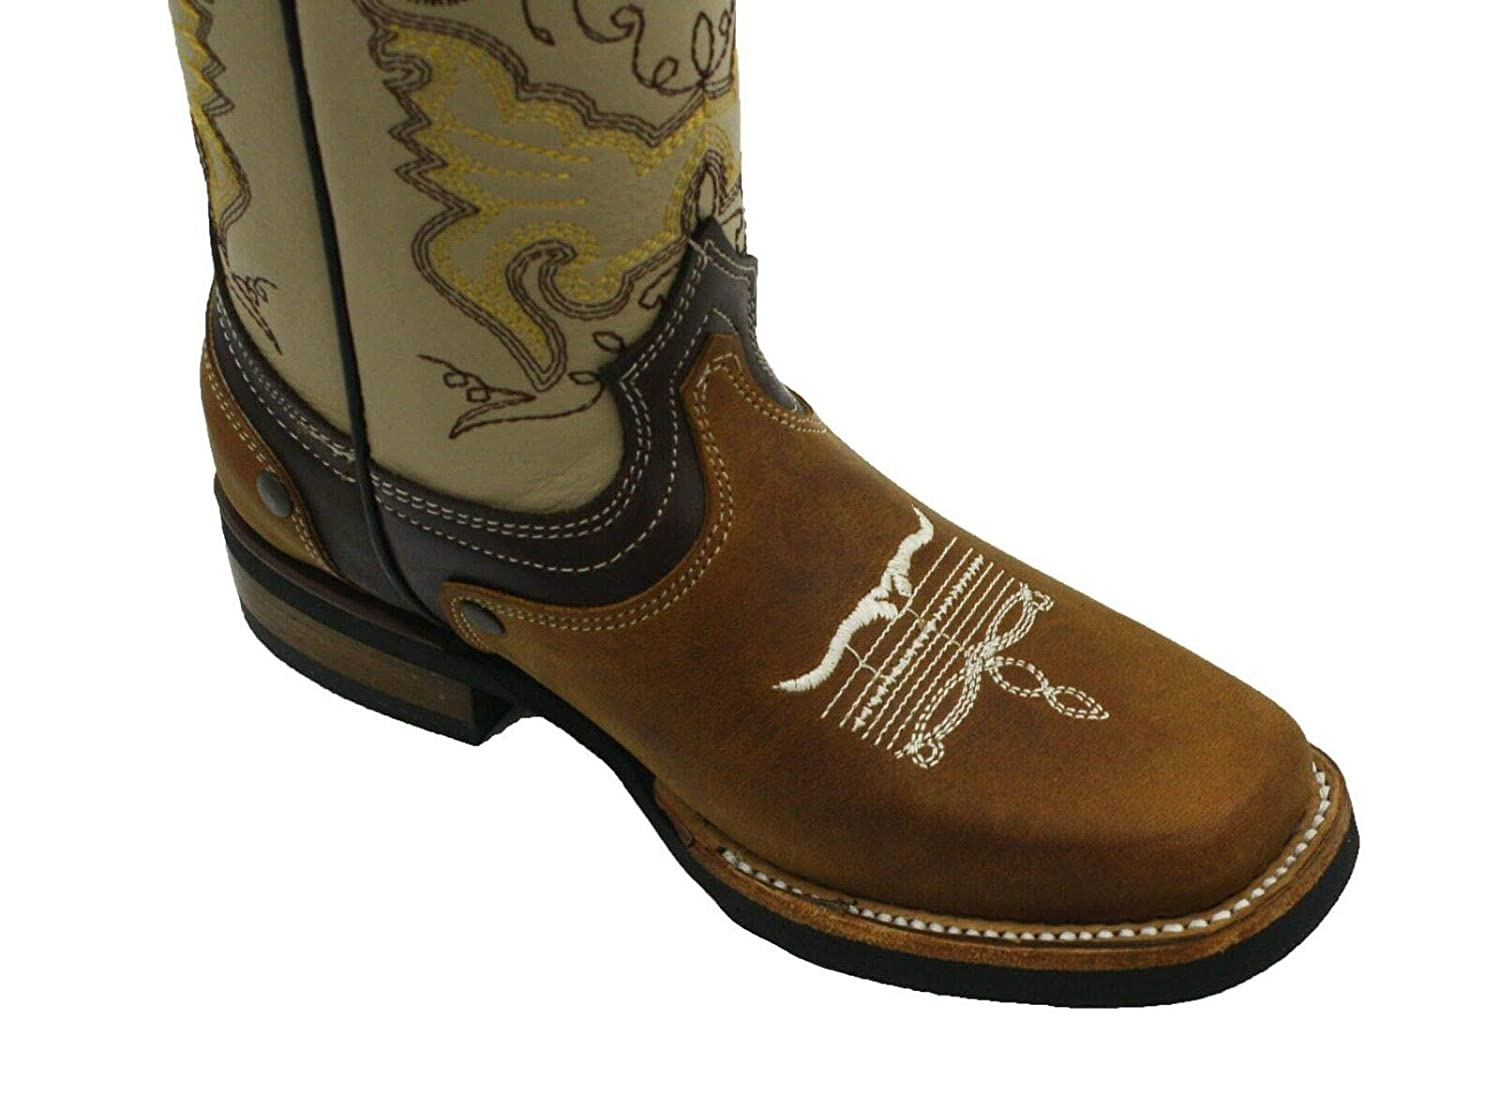 Kids Unisex Genuine Cowhide Leather Durable Tough Rodeo Western Cowboy Boots